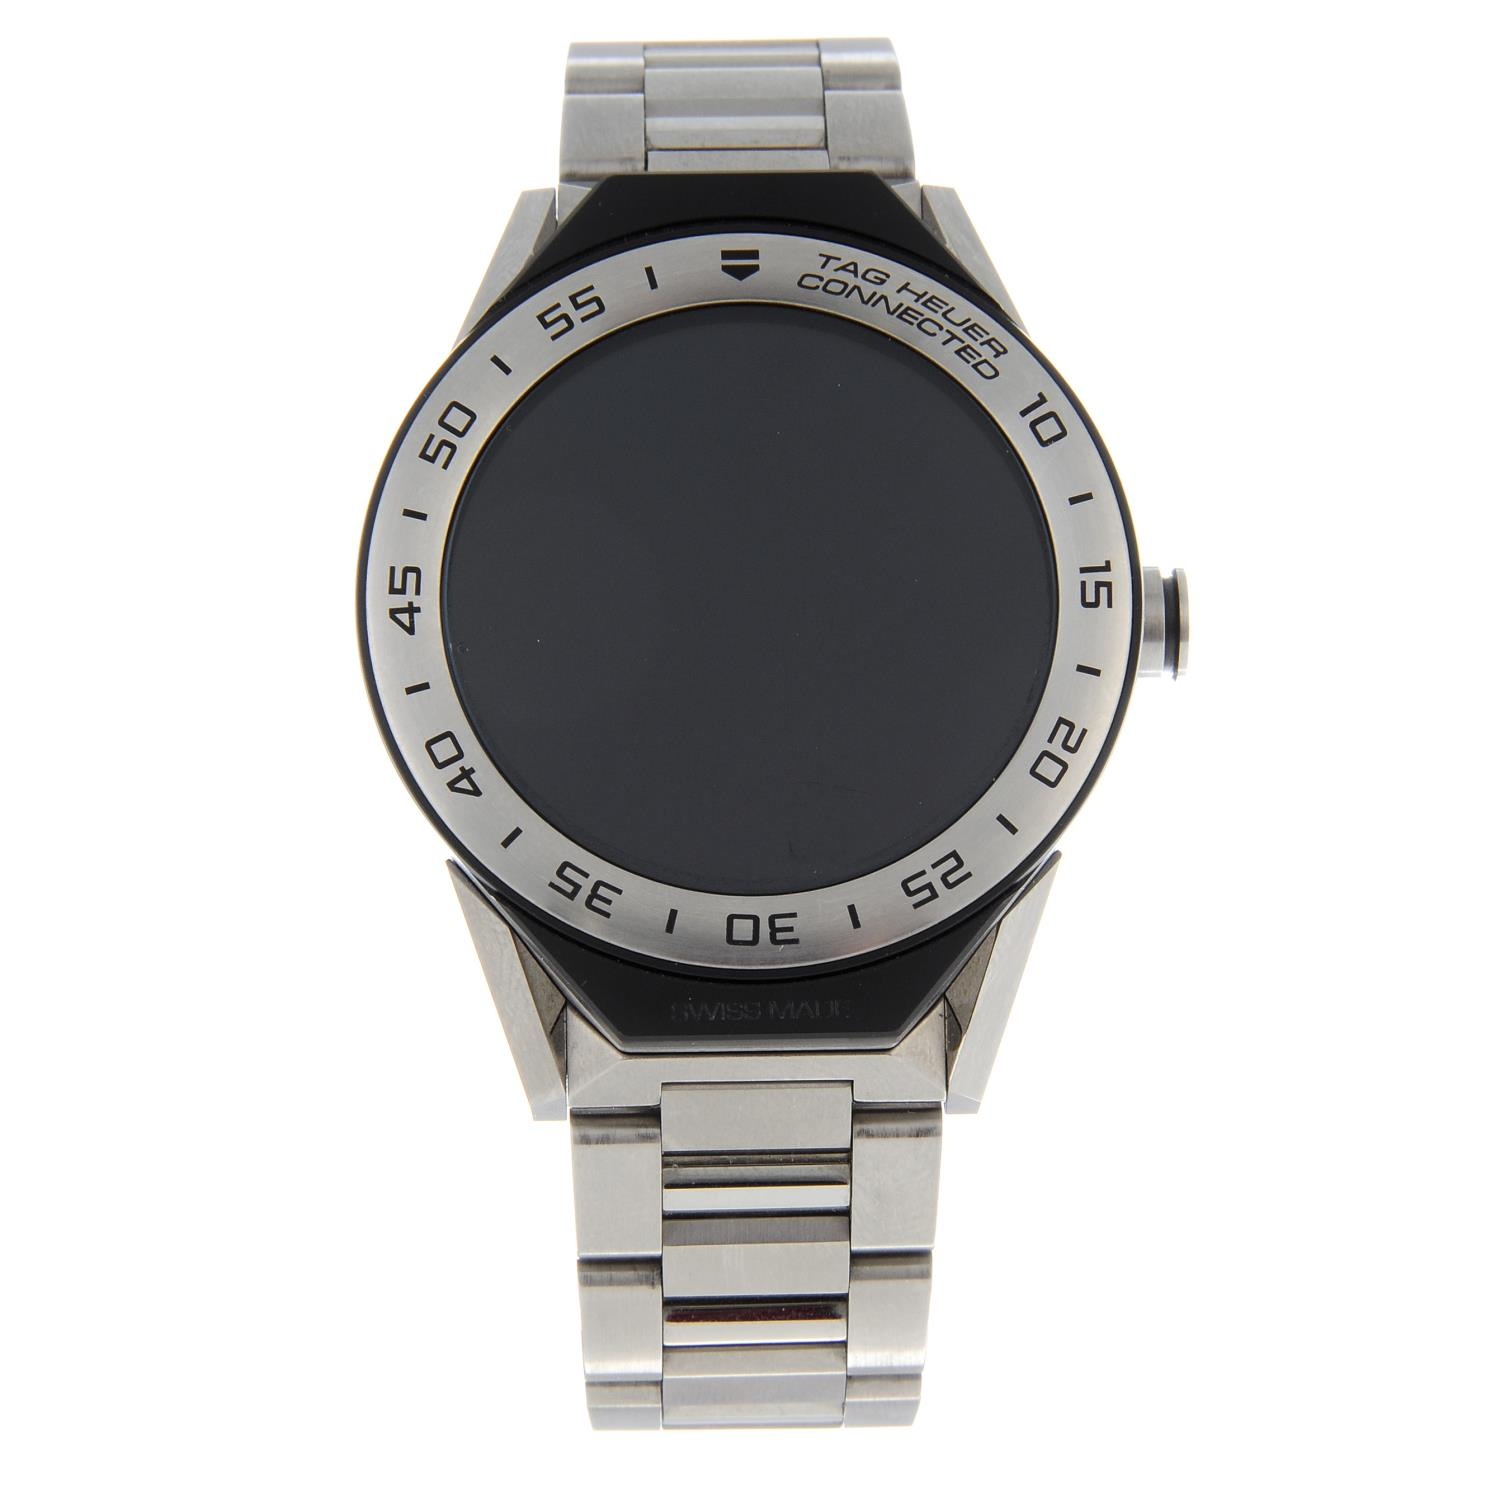 TAG HEUER - a Connected bracelet watch.